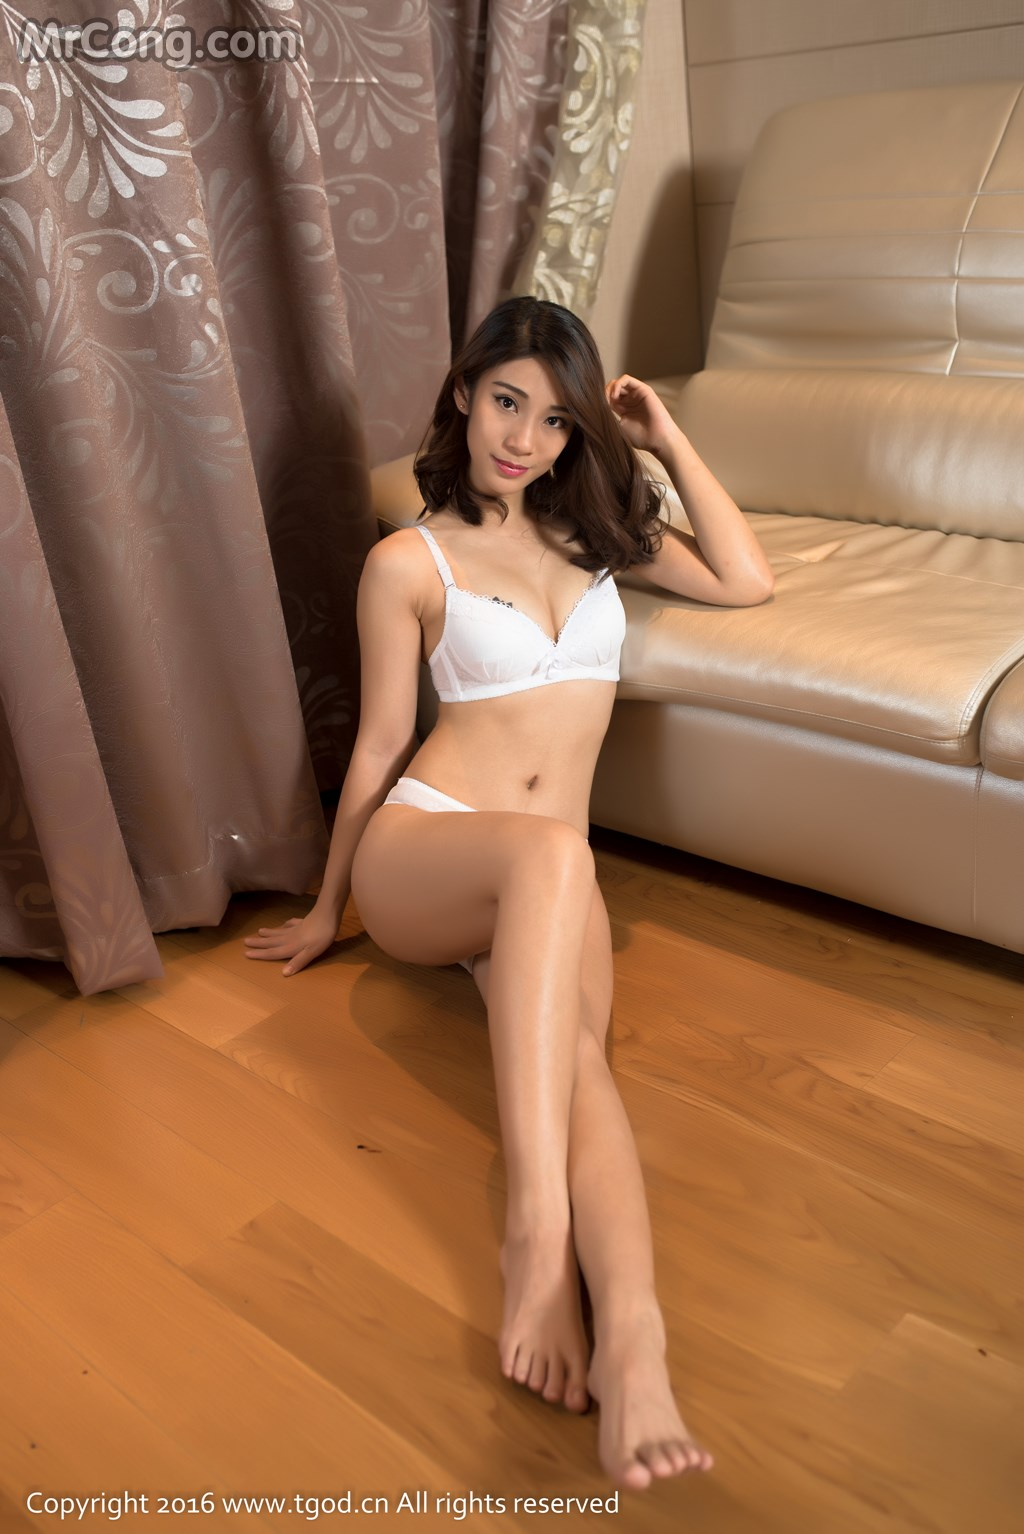 TGOD 2016-05-24: Model Xiao Tang (Lee小棠) (39P)